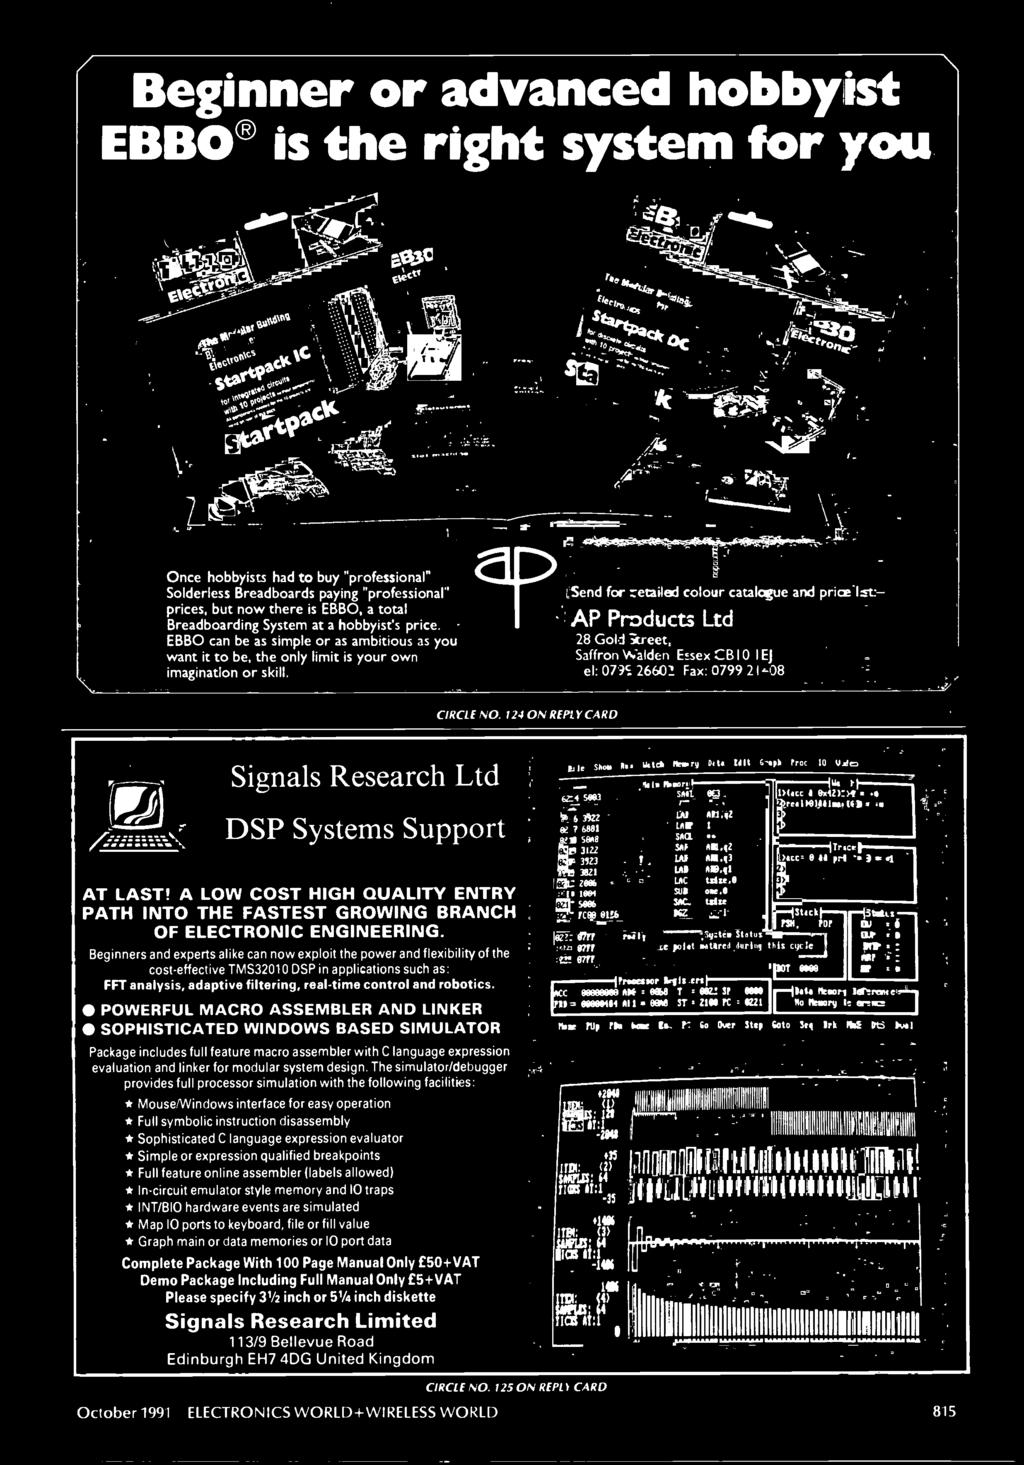 Ele N Wireless World Transformers Electric Fields And Re Compressor Electrical Question In Reply To George Marsh 0105 124 On Card Signals Research Ltd Dsp Systems Support At Last A Low Cost